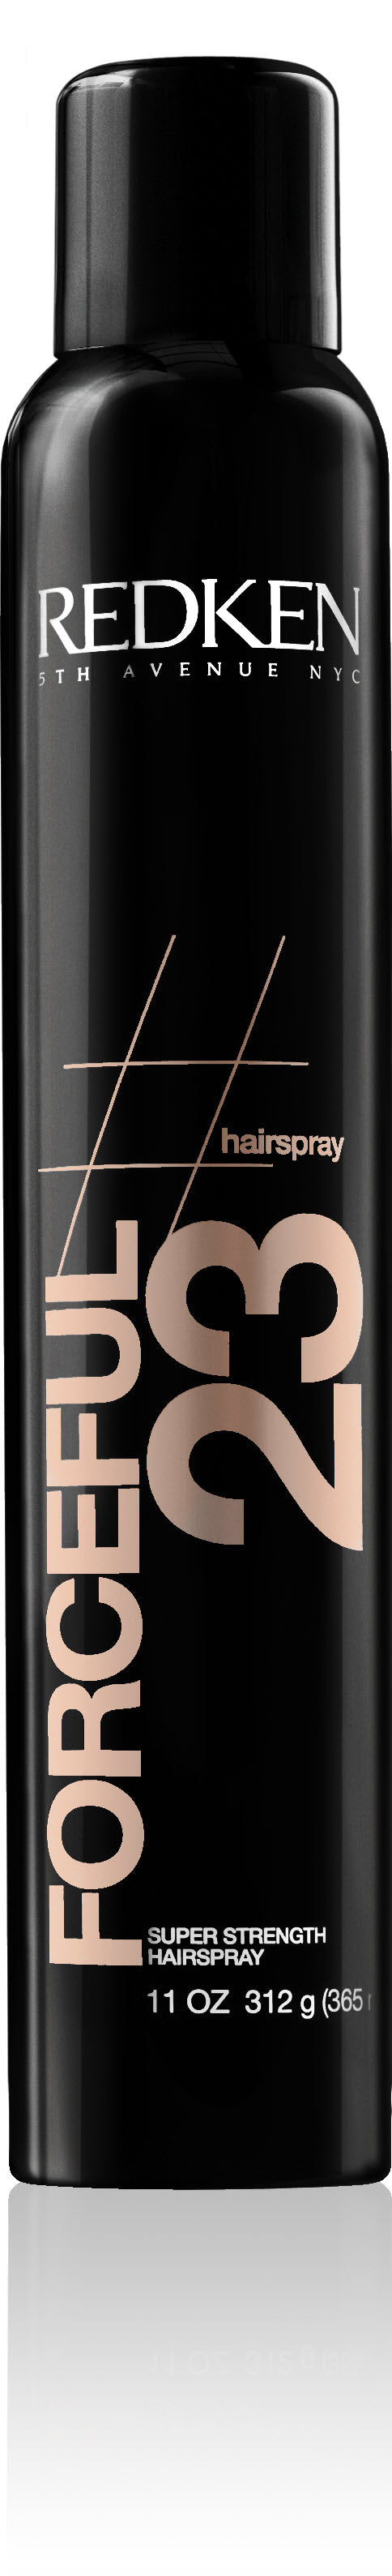 Redken Forceful 23 Super Strength Hairspray 9.8 OZ.